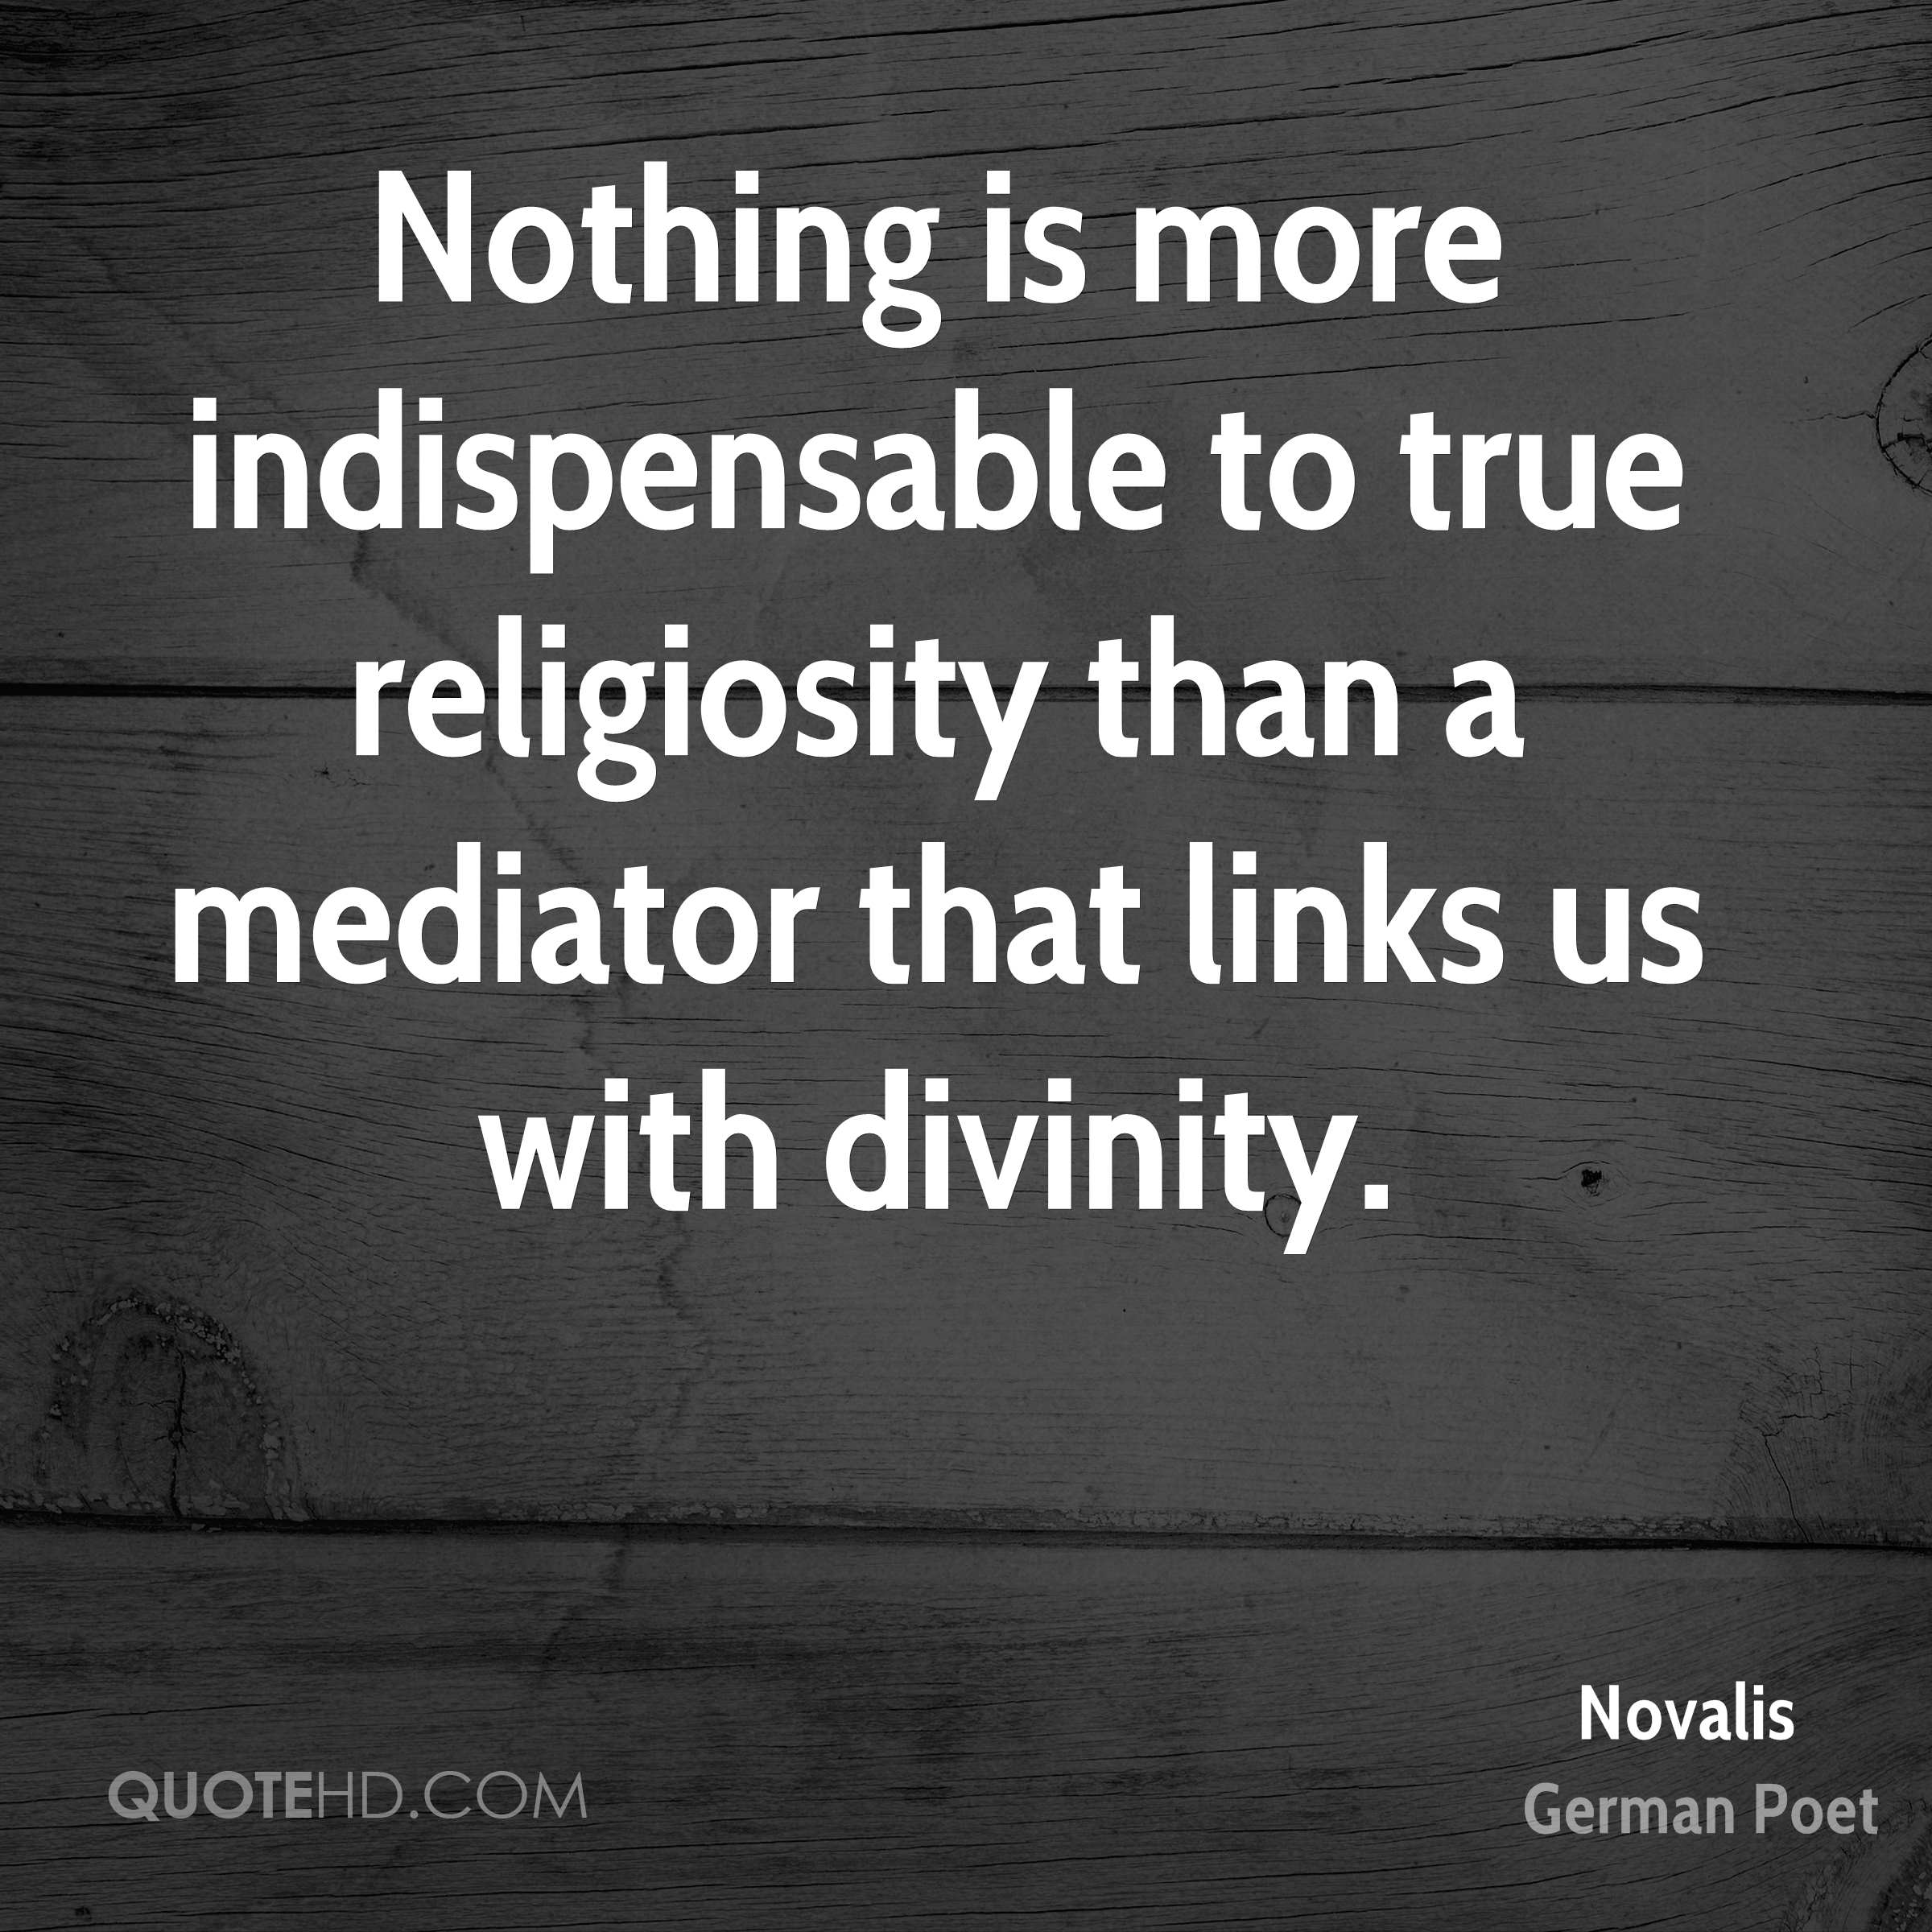 Nothing is more indispensable to true religiosity than a mediator that links us with divinity.